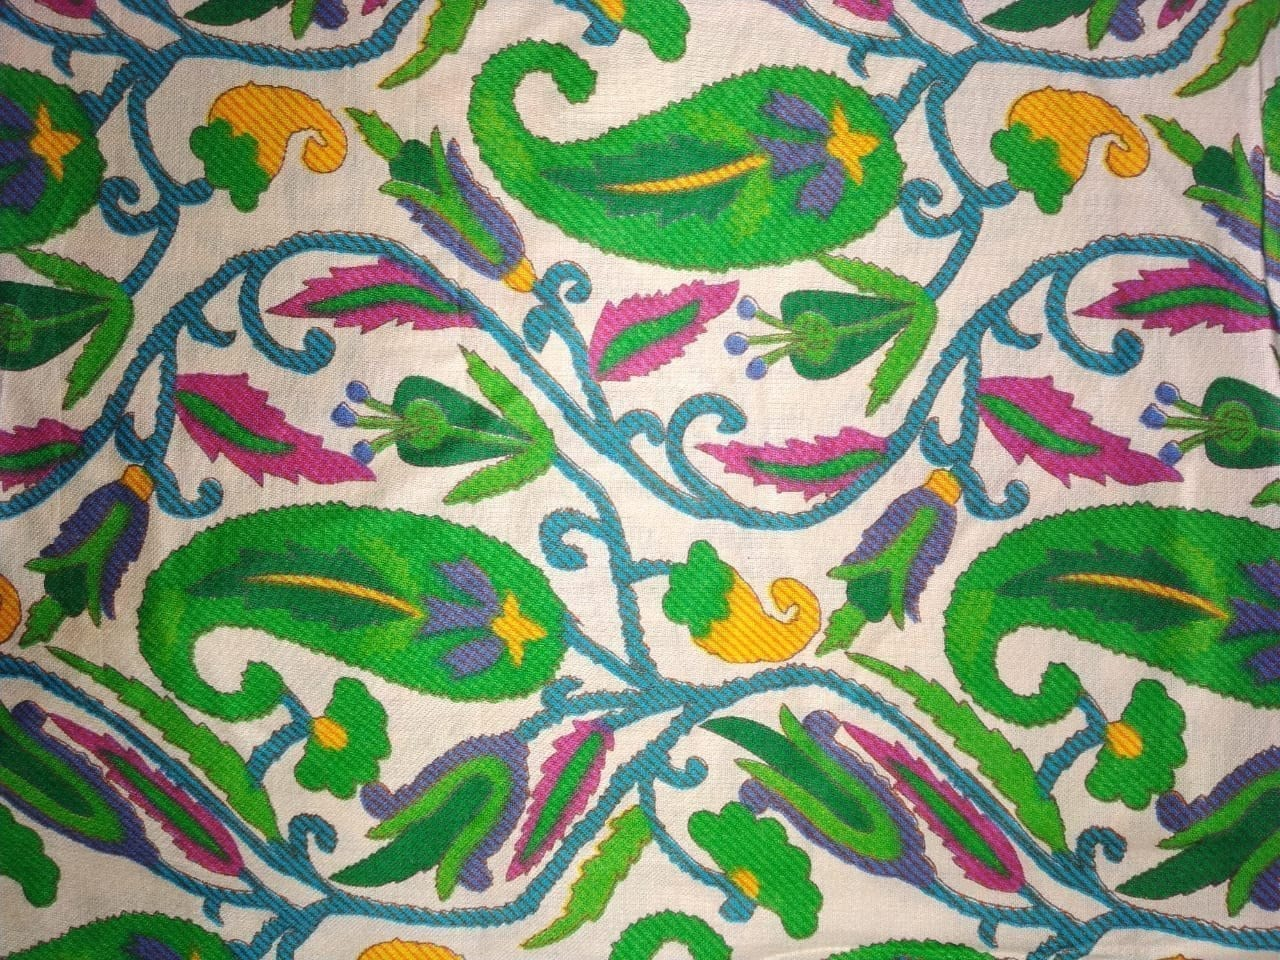 Green Paisley Printed Glazed Cotton Fabric for Multipurpose use GC008 1